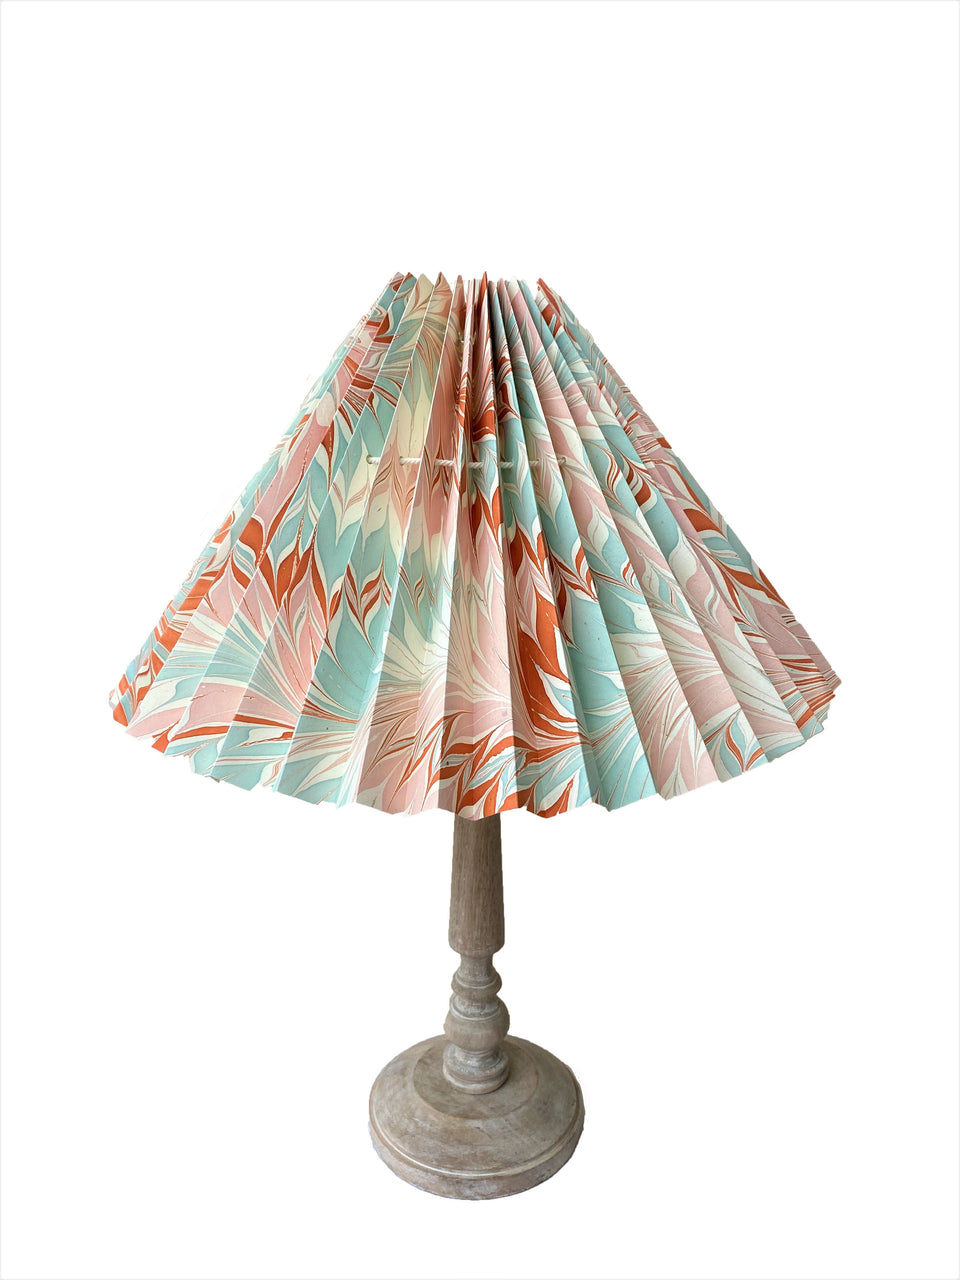 HANDMADE PAPER LAMPSHADE IN PALE BLUE AND ORANGE MARBLE